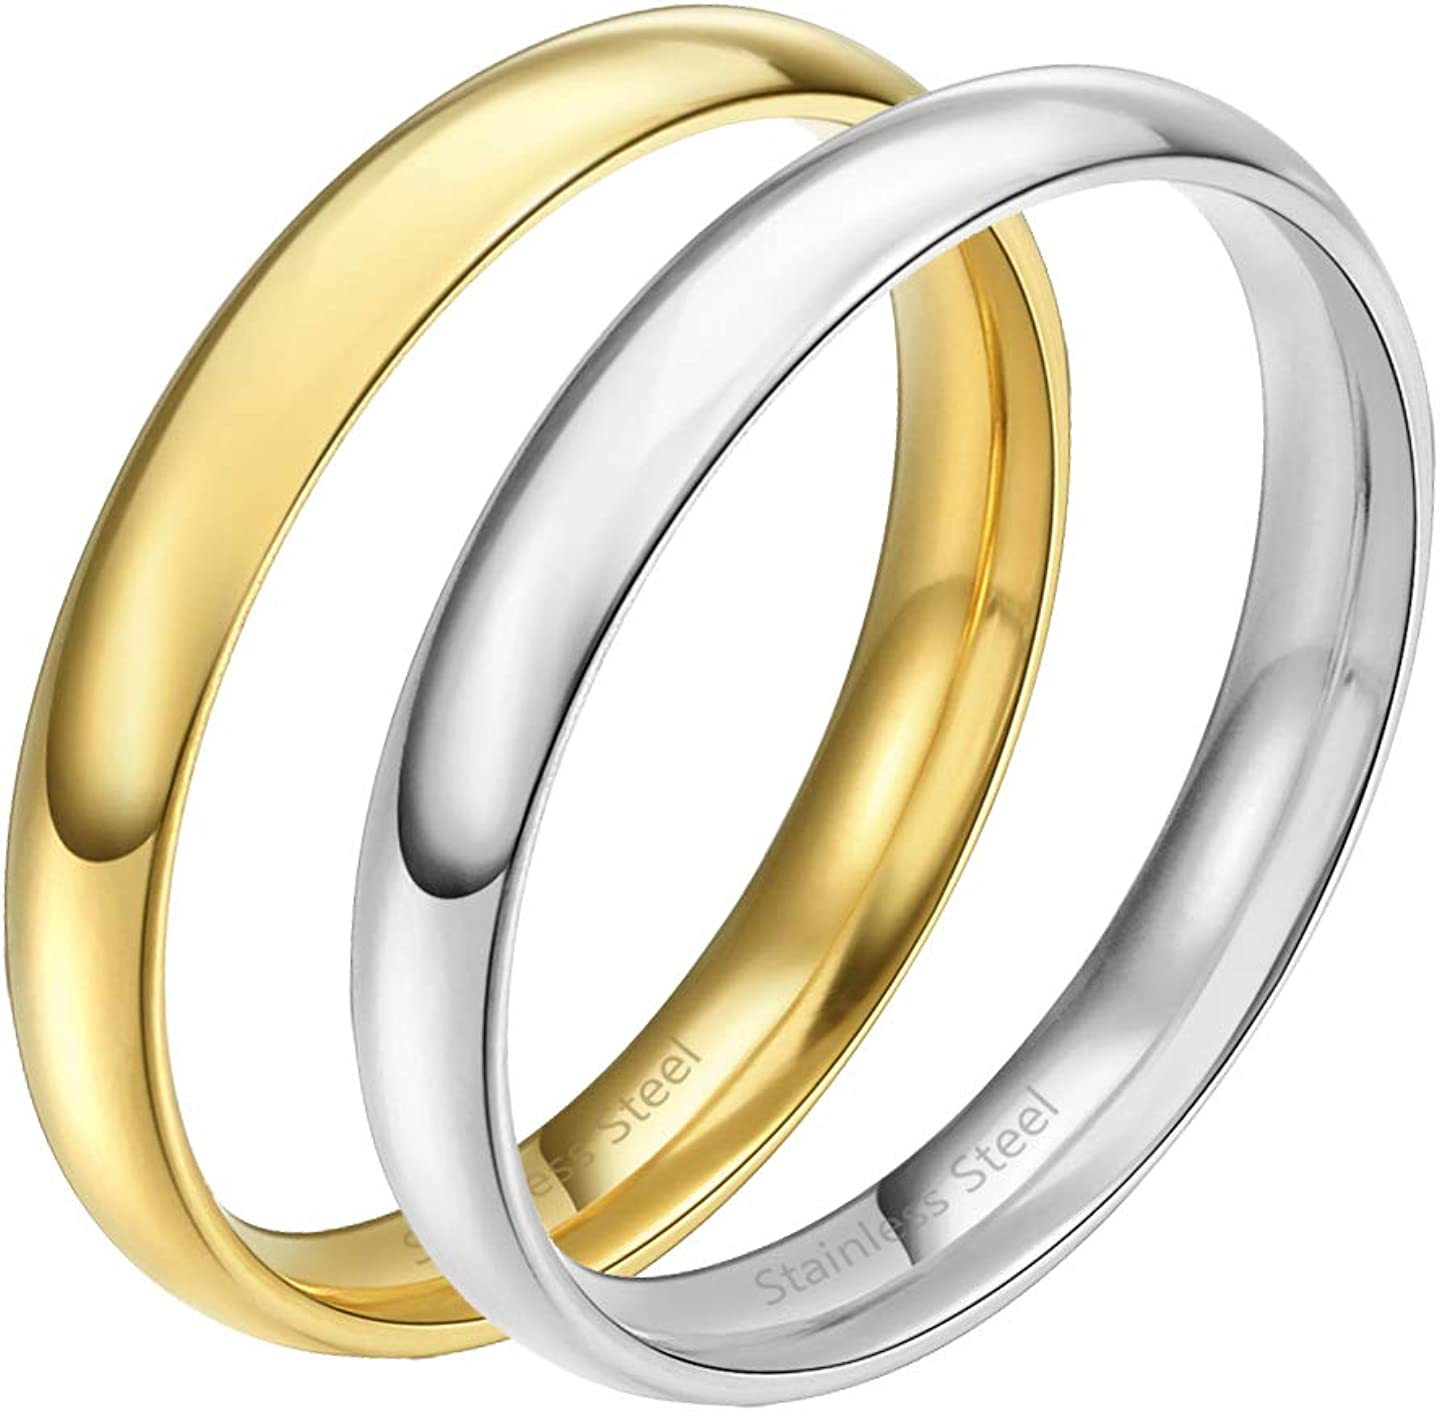 3mm Lavencious Comfort Fit Stainless Steel Gold /& Silver Wedding Band Set